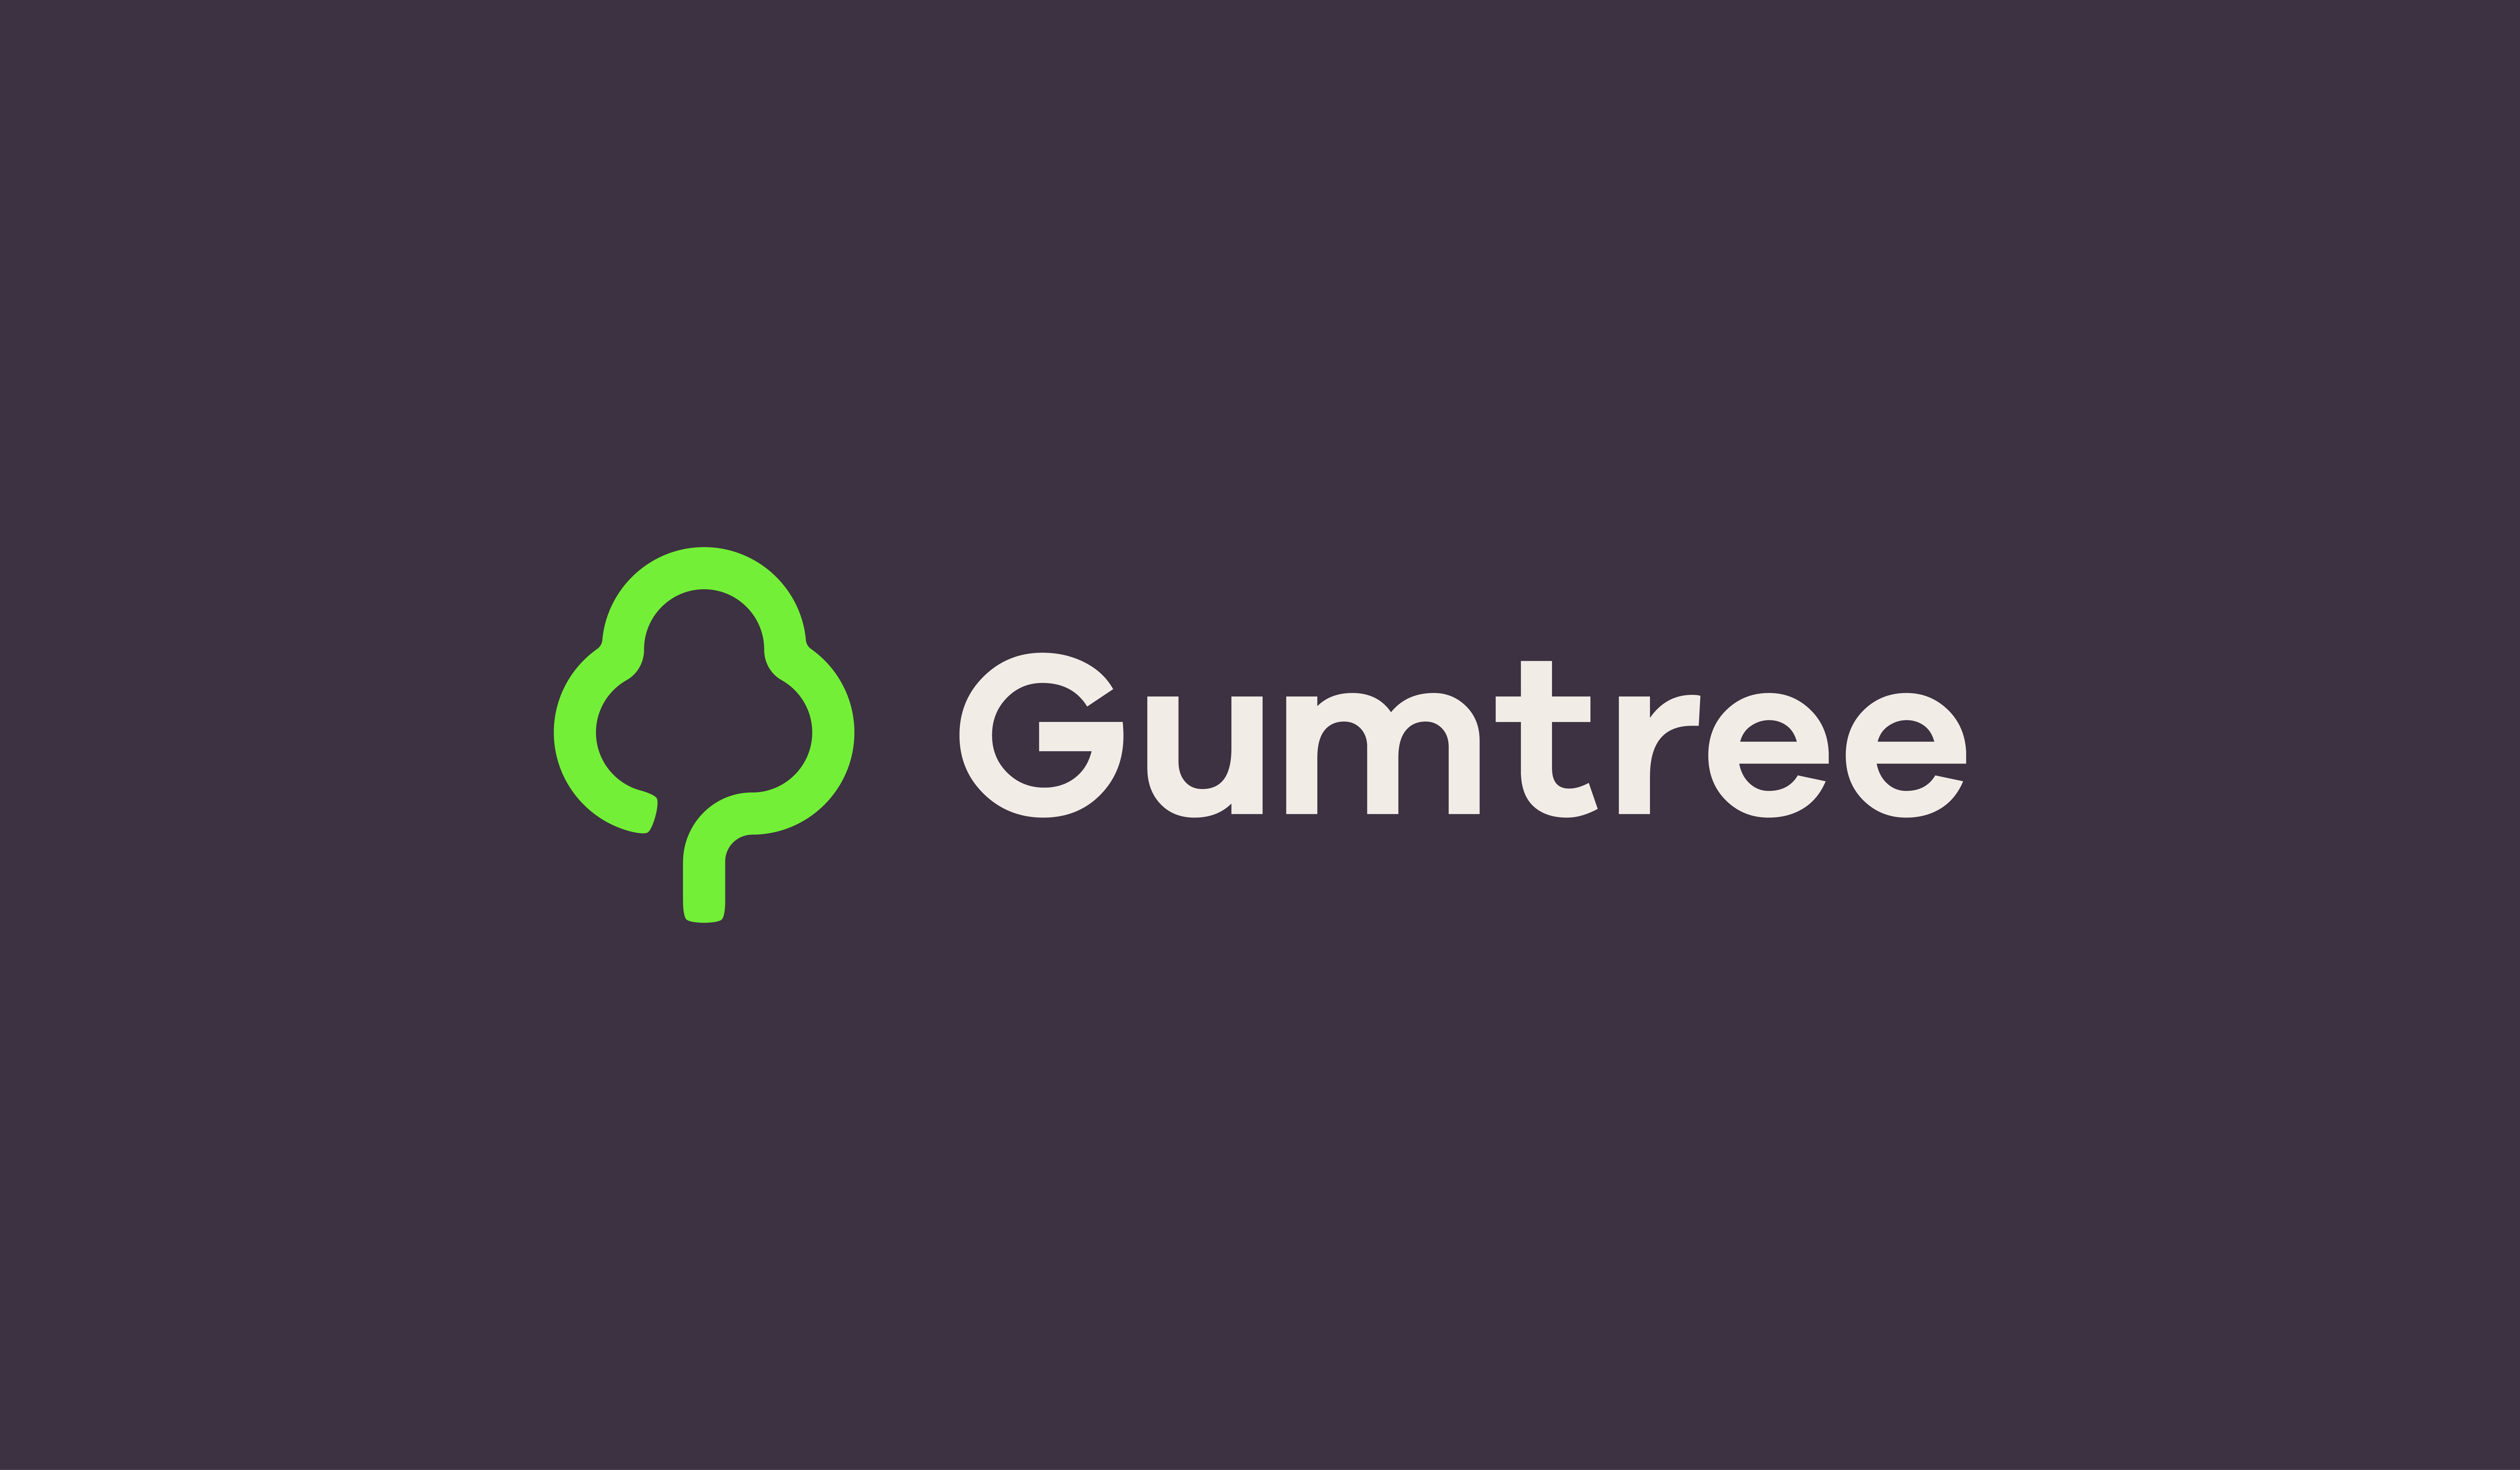 Gumtree, the UK's largest classifieds website